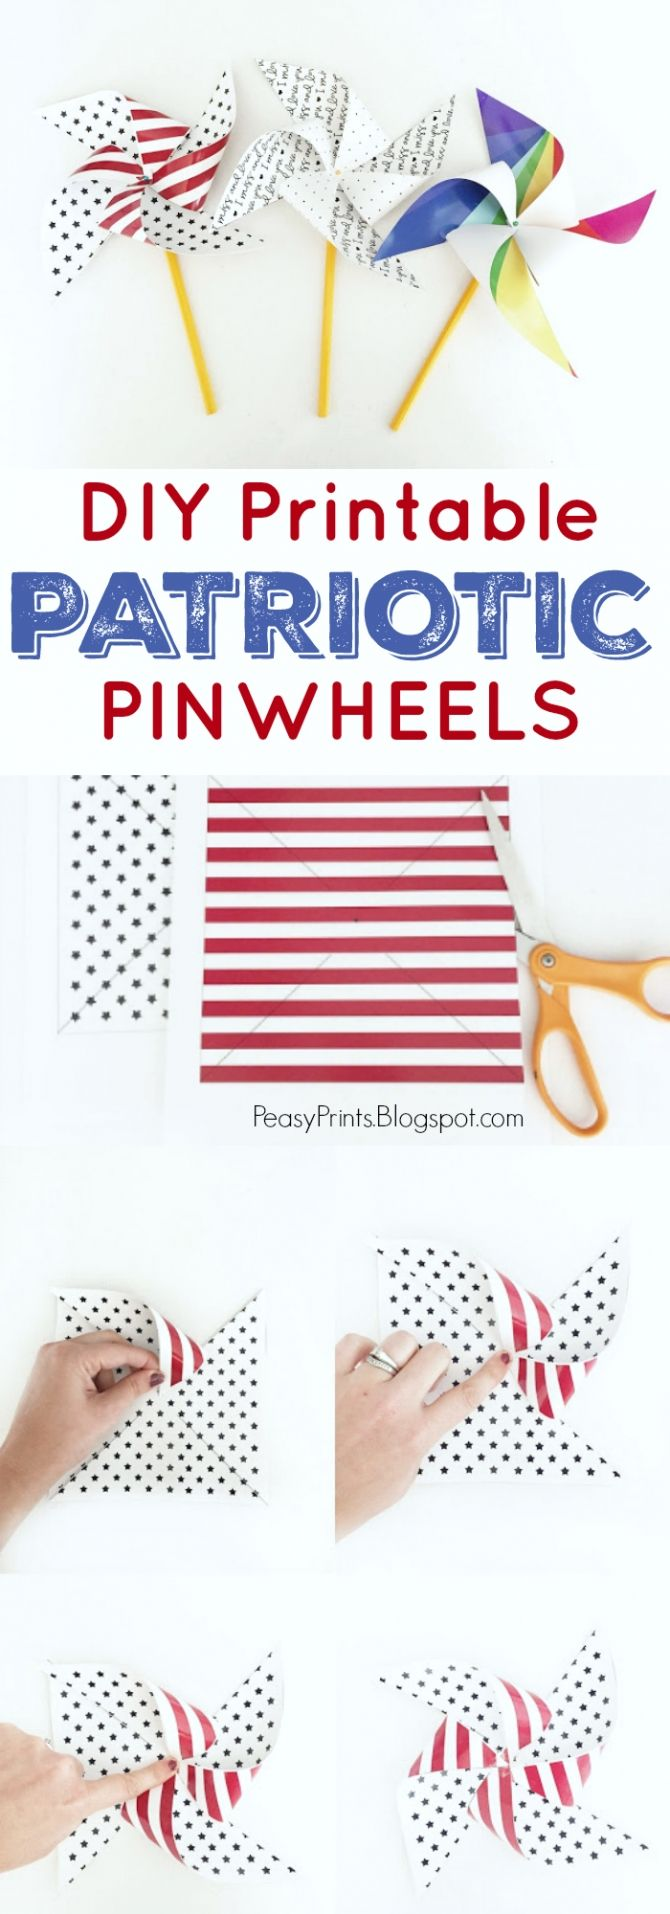 patriotic essays for kids Patriotism showing top 8 worksheets in the category - patriotism some of the worksheets displayed are lesson plan showing patriotism through service, nationalismimperialism work name read.